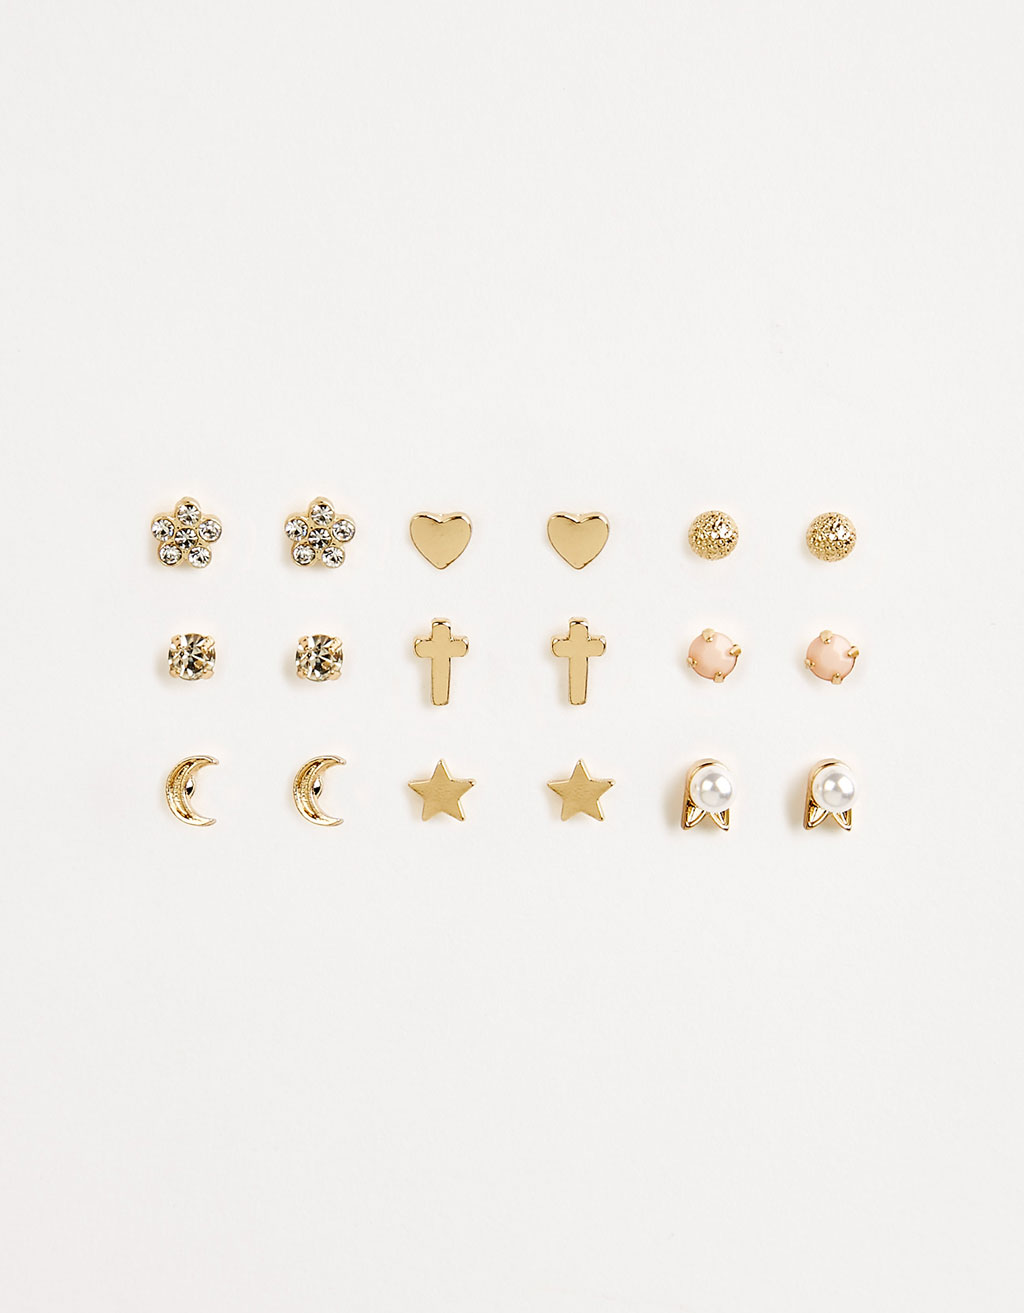 Set of 9 romantic minimalist earrings